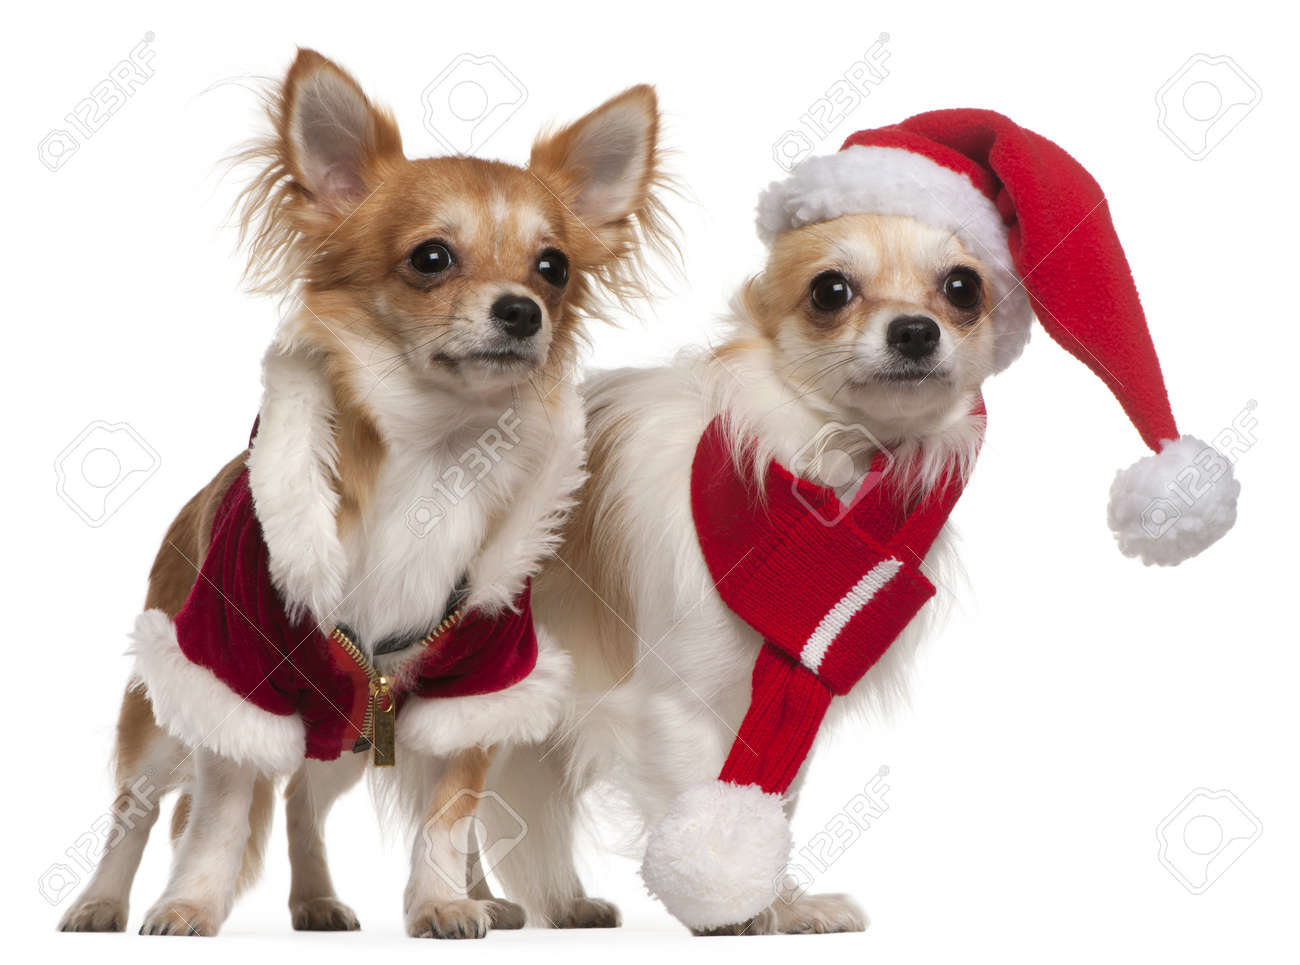 Chihuahuas Dressed In Santa Outfits For Christmas In Front Of ...